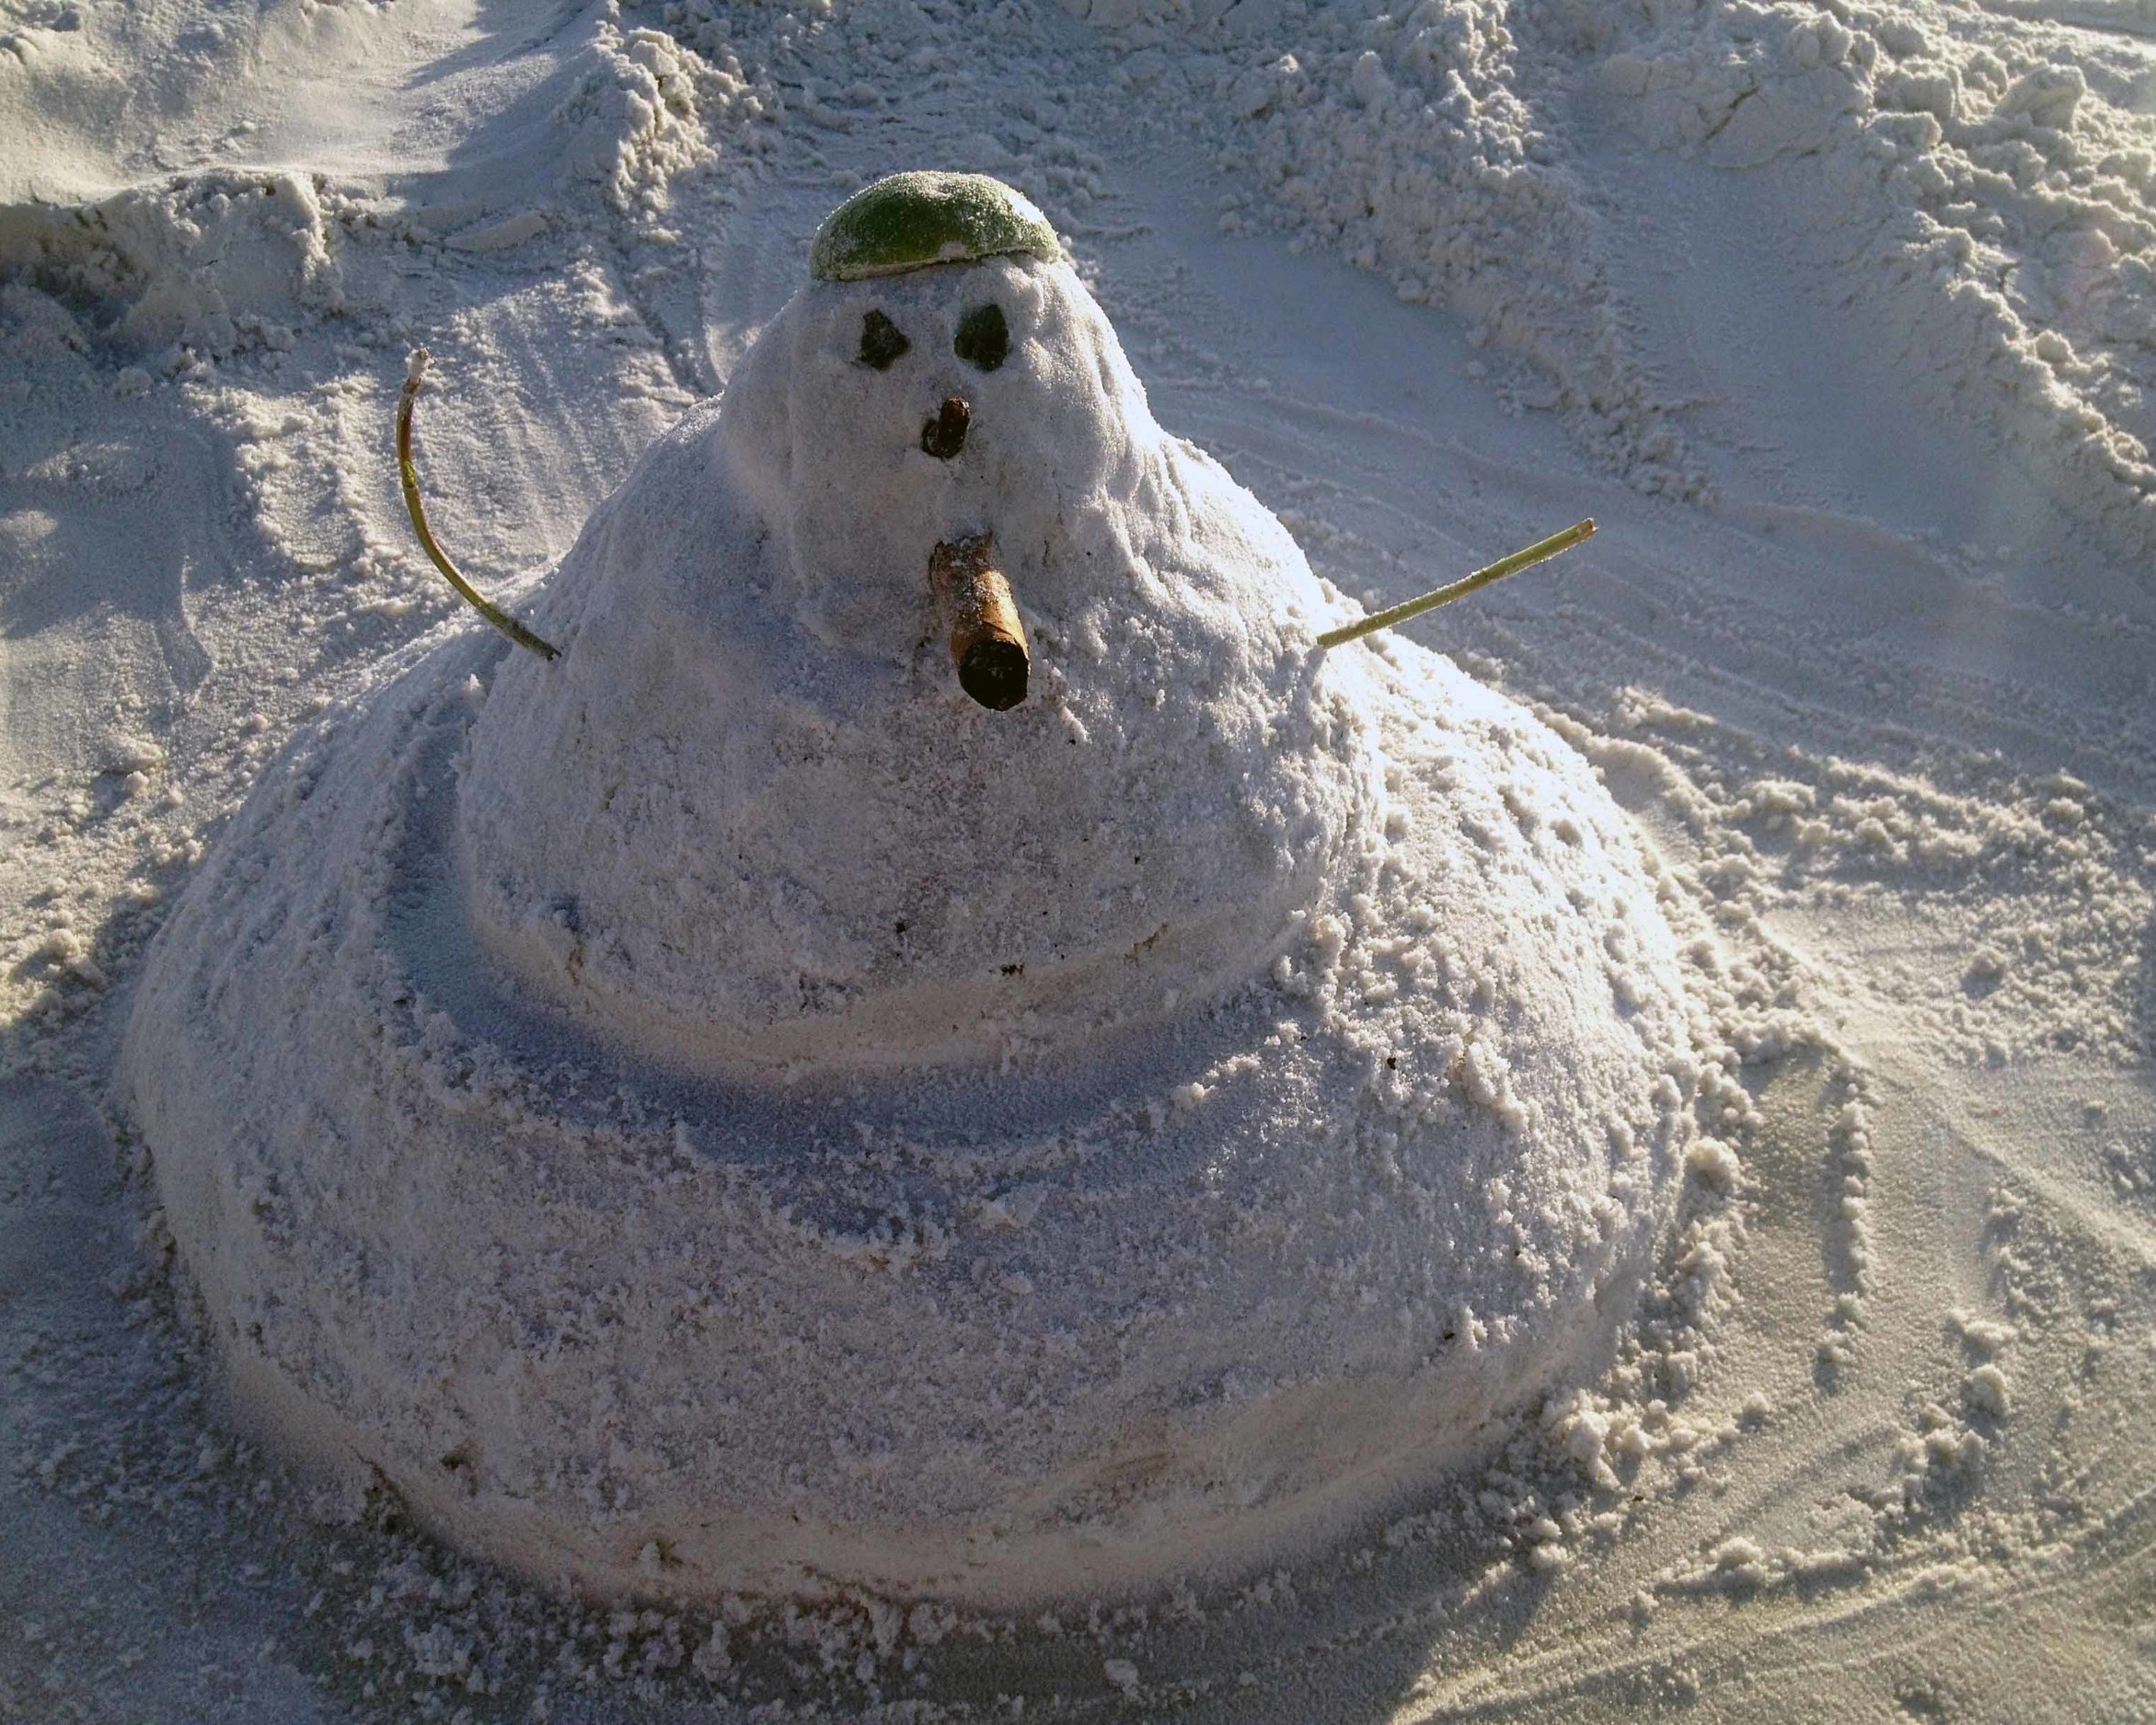 This is how you build a snowman in Tampa, Florida